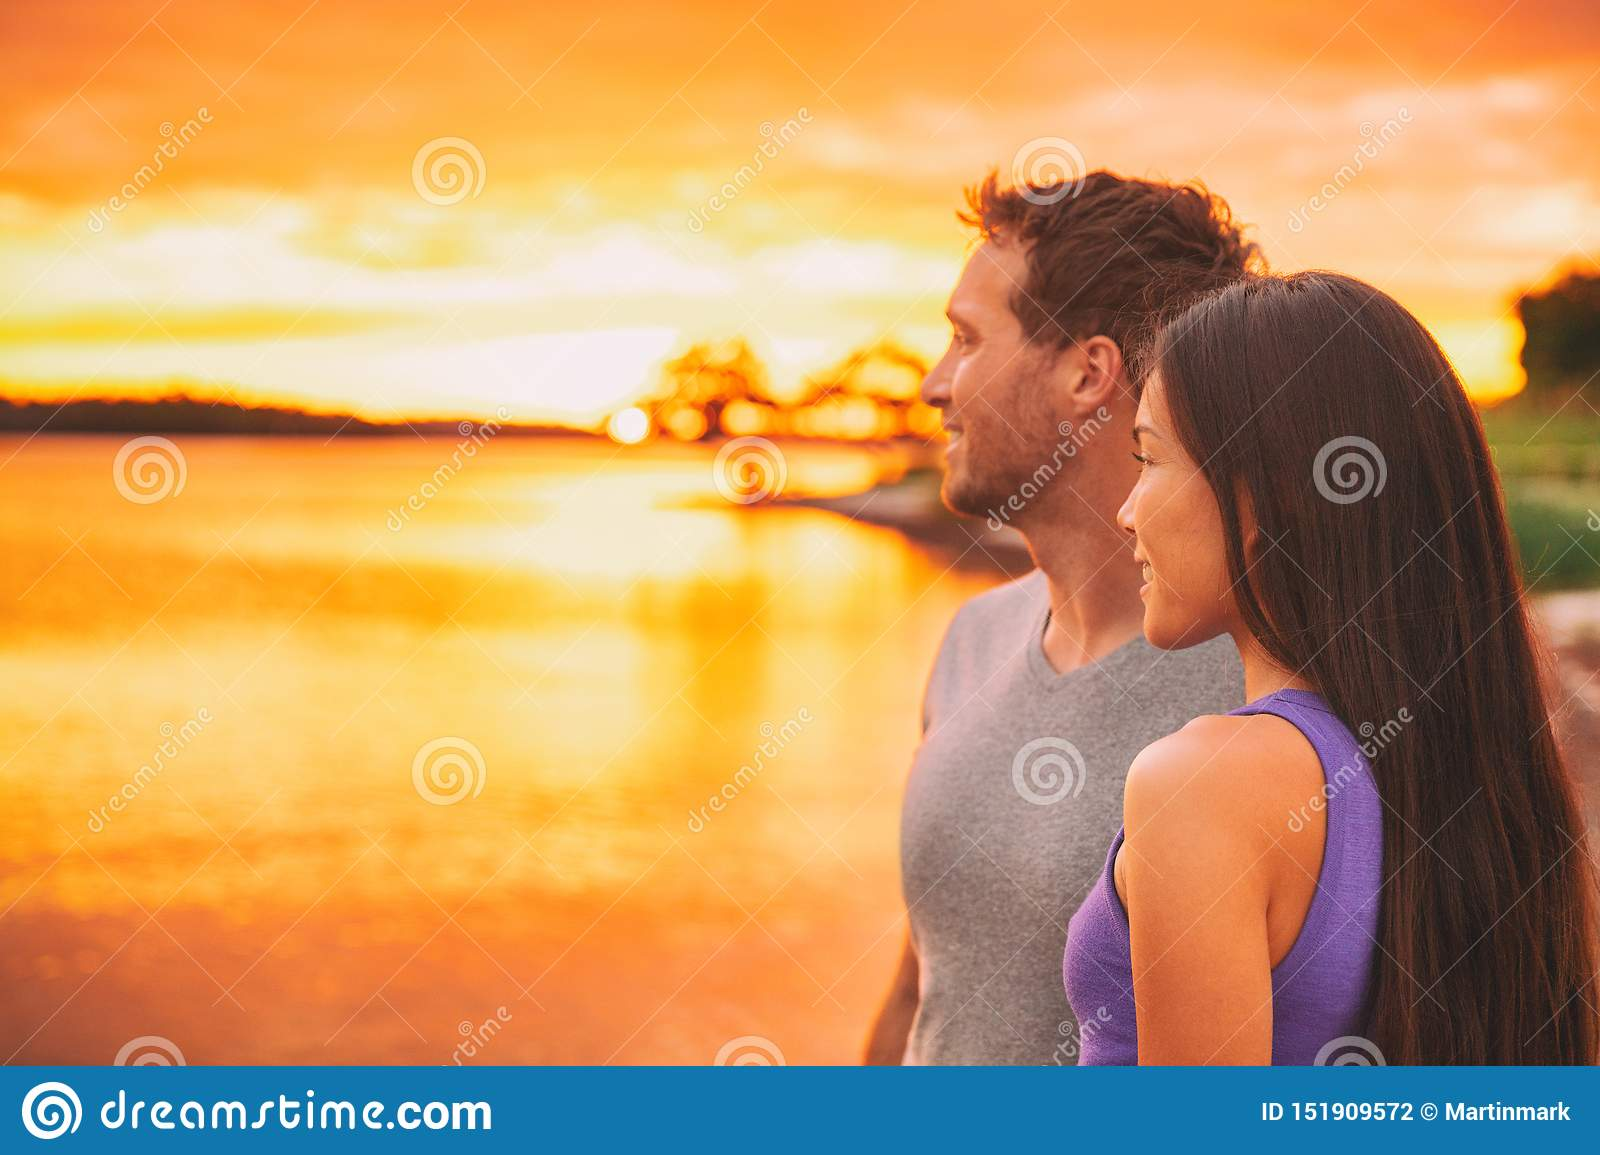 Couple relaxing on beach watching sunset glow over ocean in Caribbean background. Asian girl, Caucasian man interracial